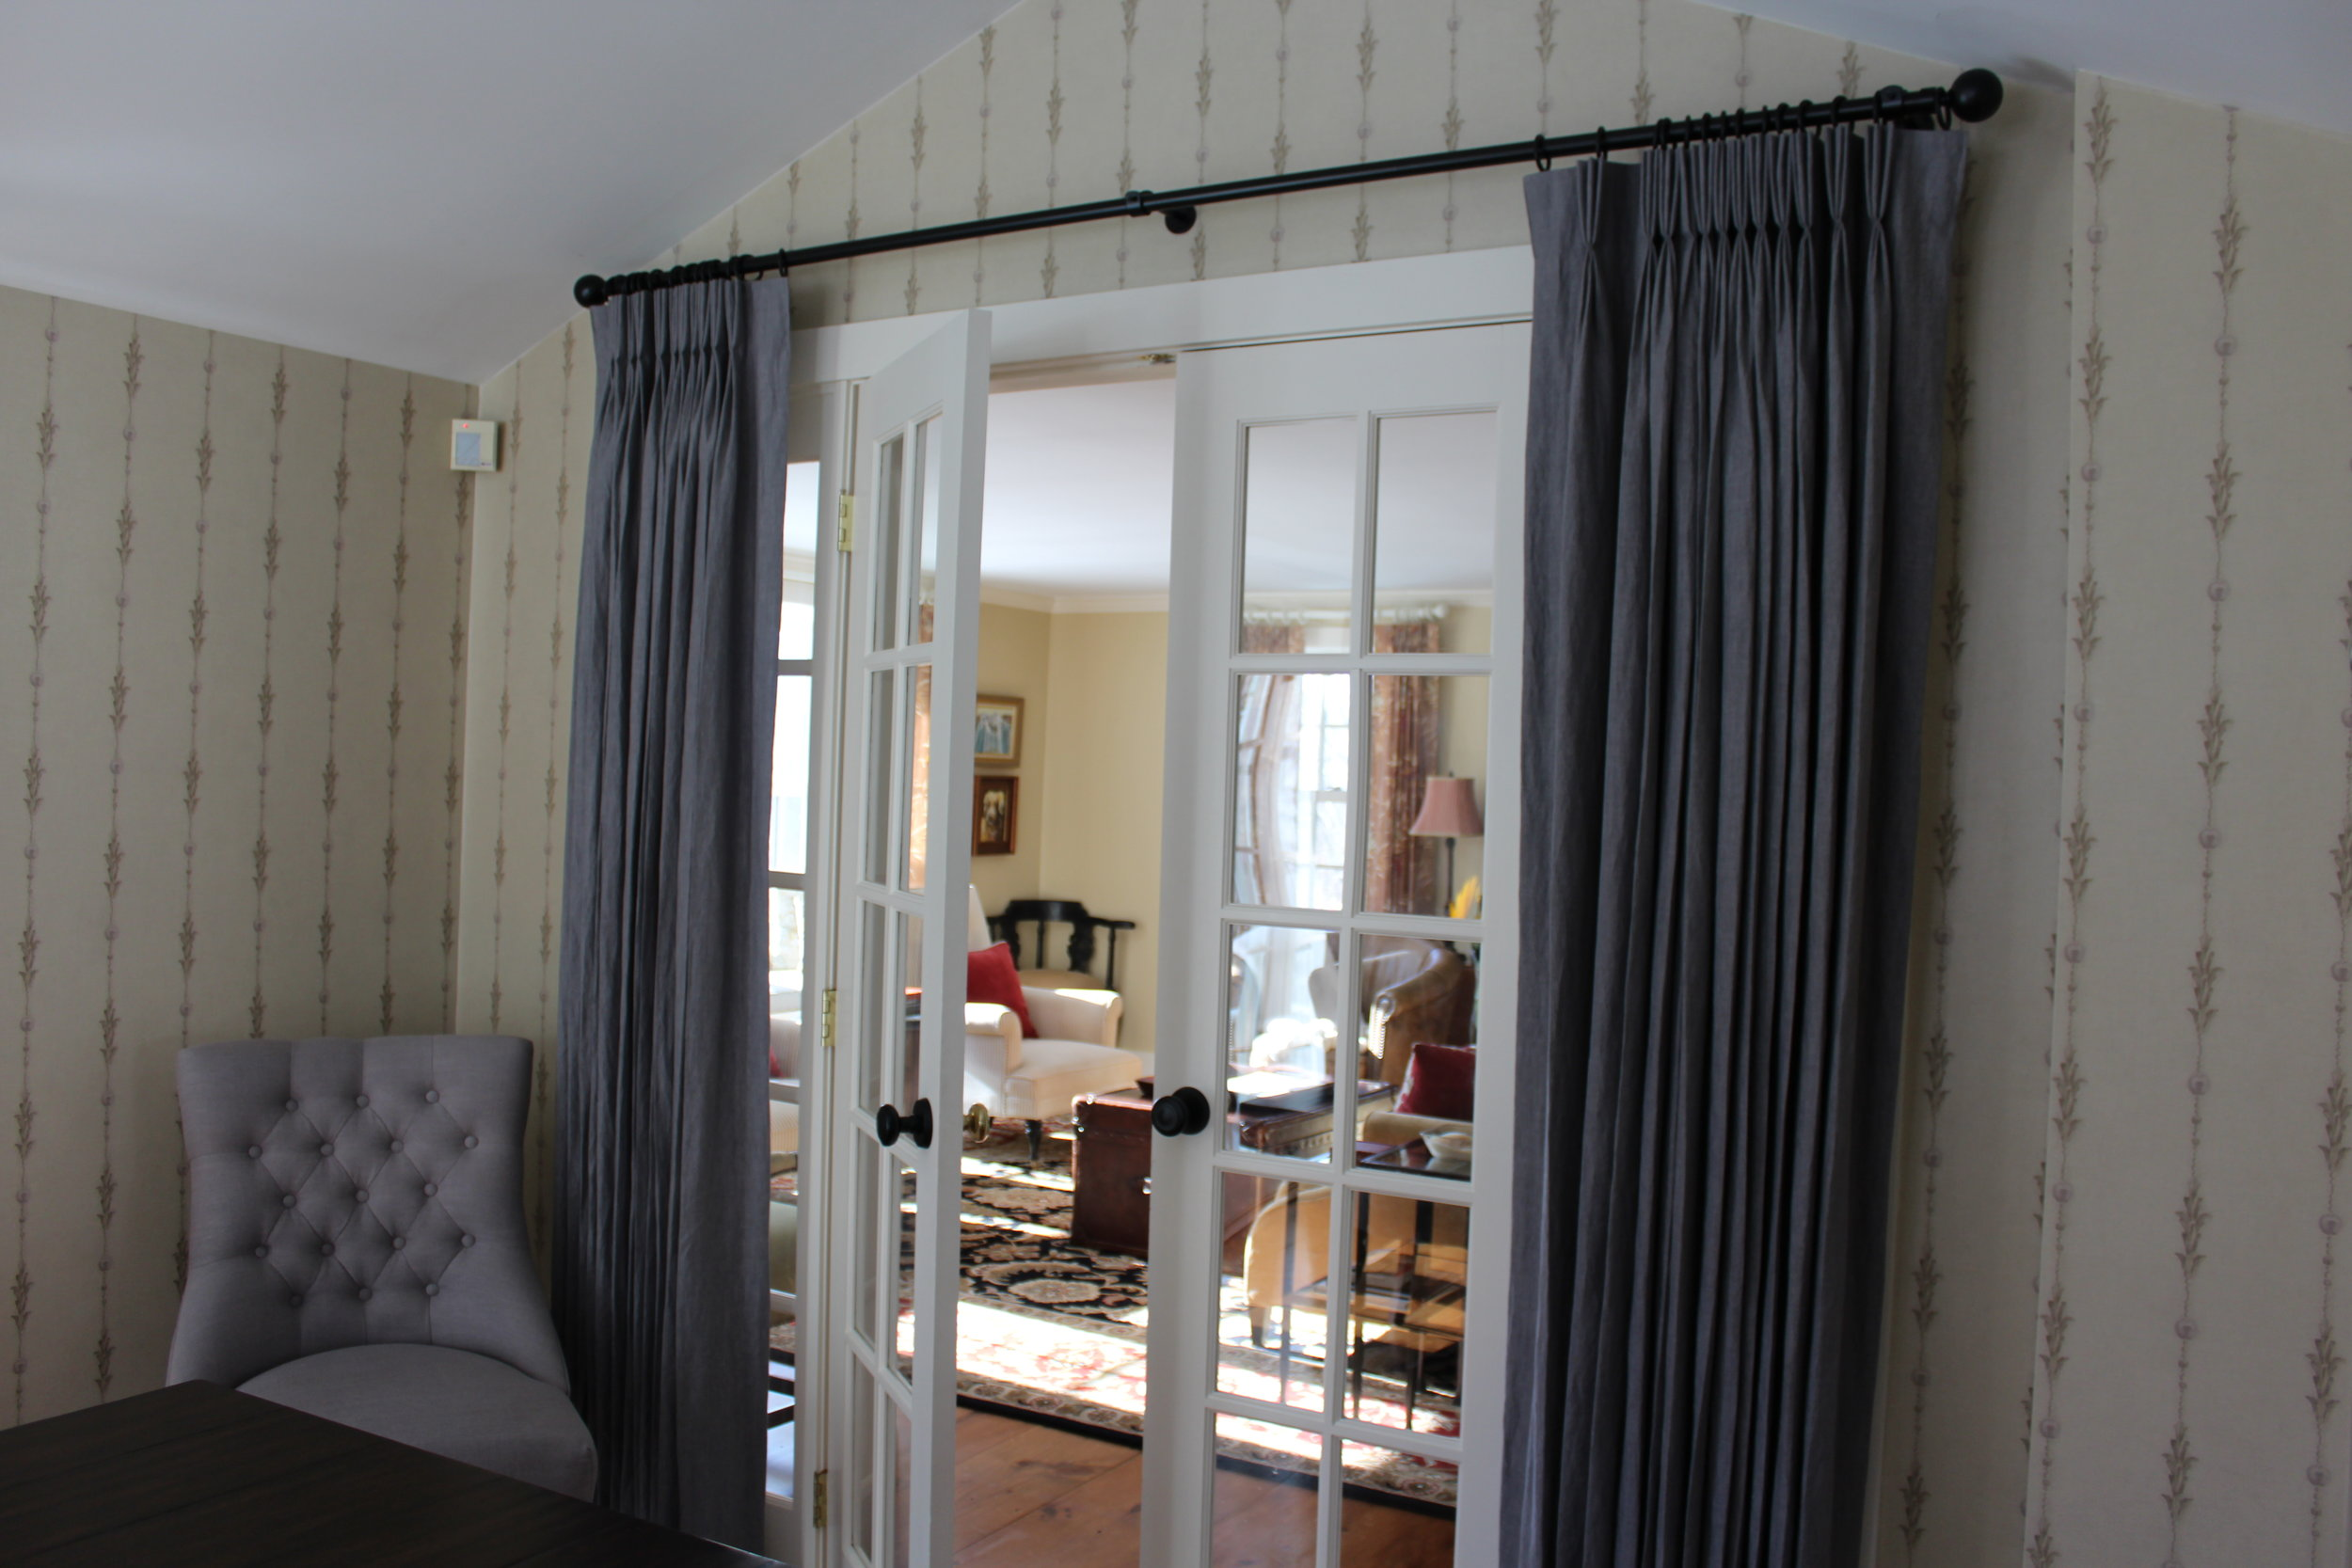 Panels are useful on interior french doors for privacy. In this dining room we treated these doors like we did the windows with linen pinch pleat drapes hung from iron rods and rings that match the door hardware.